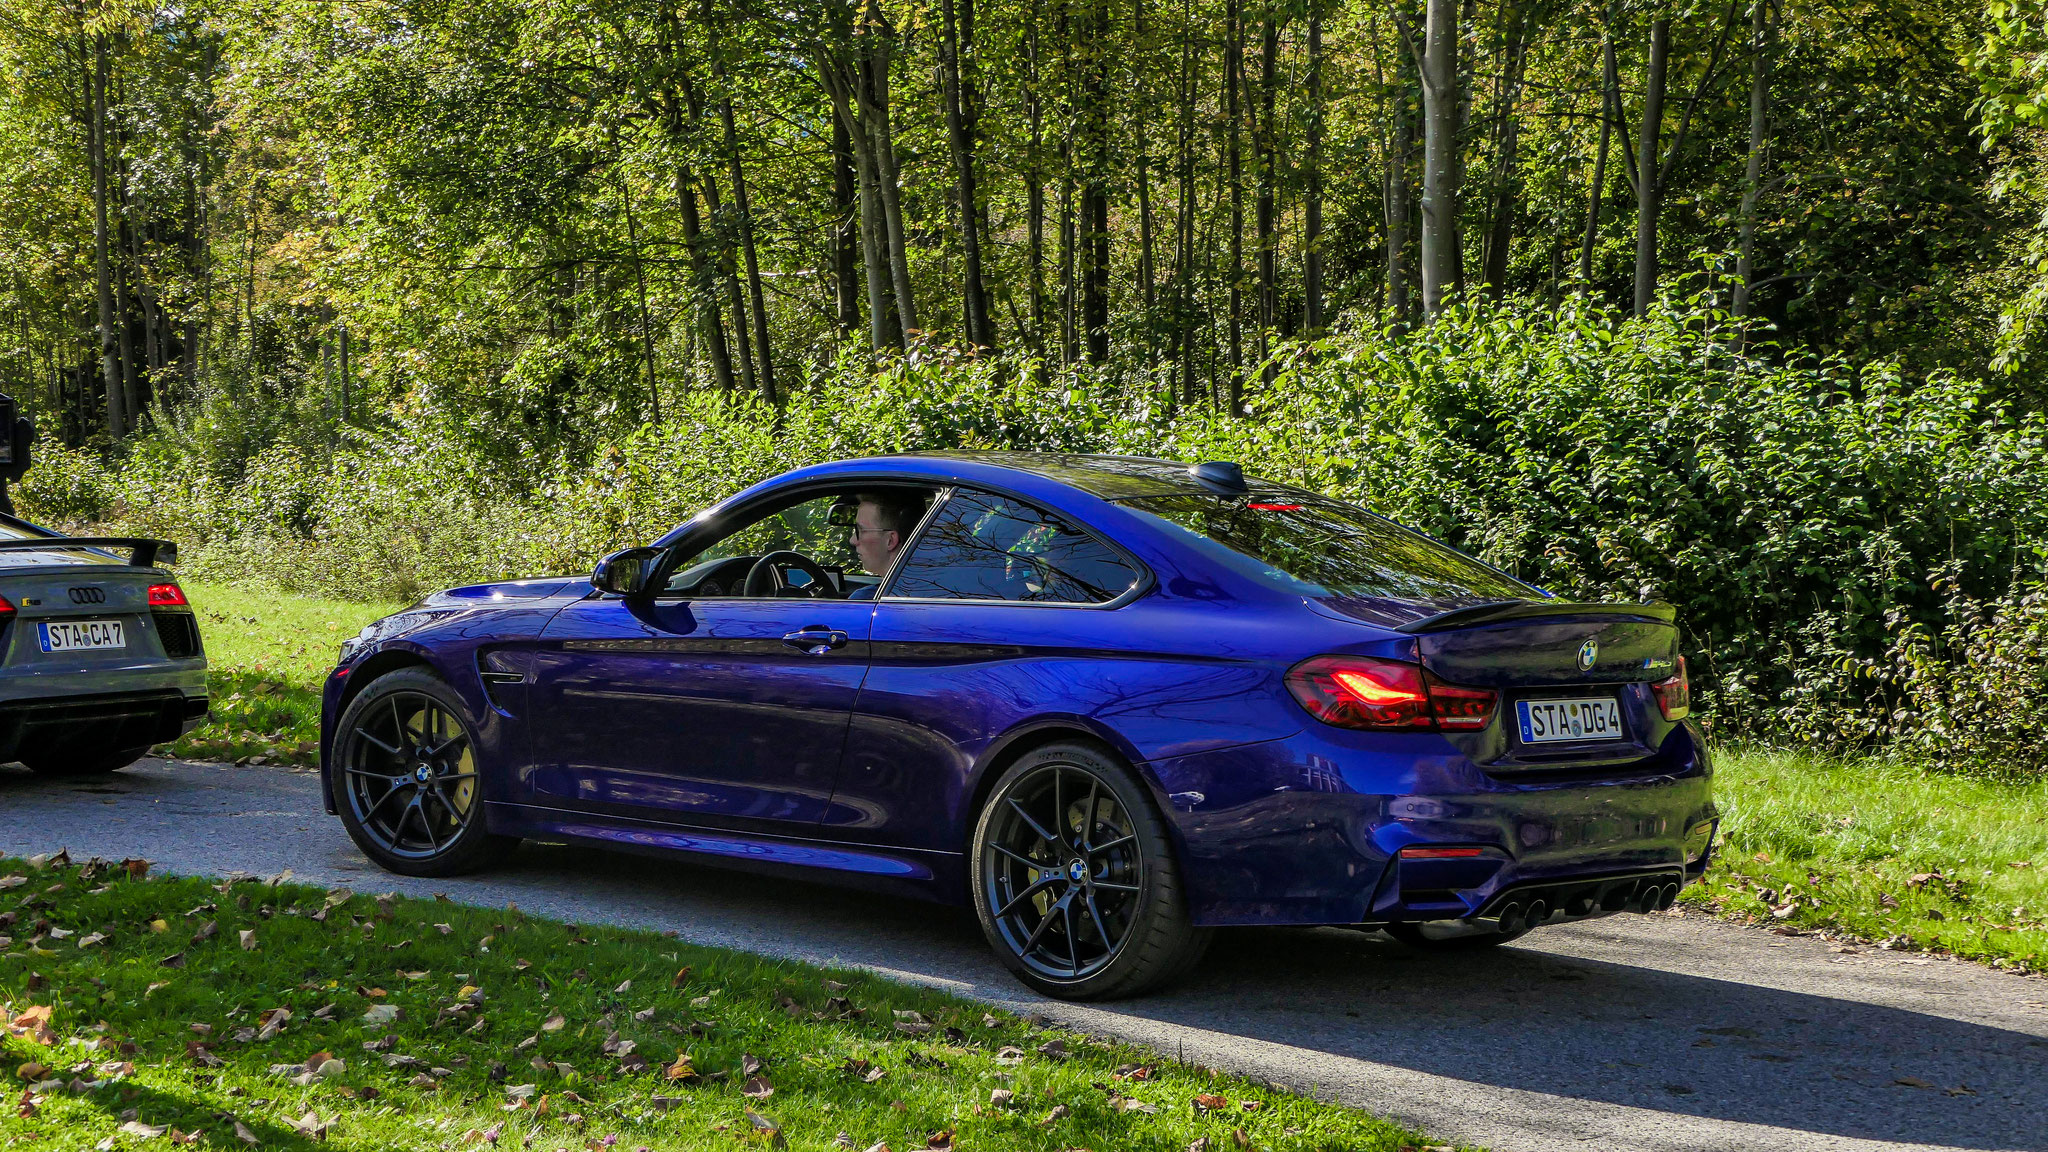 BMW M4 CS - STA-DG-4